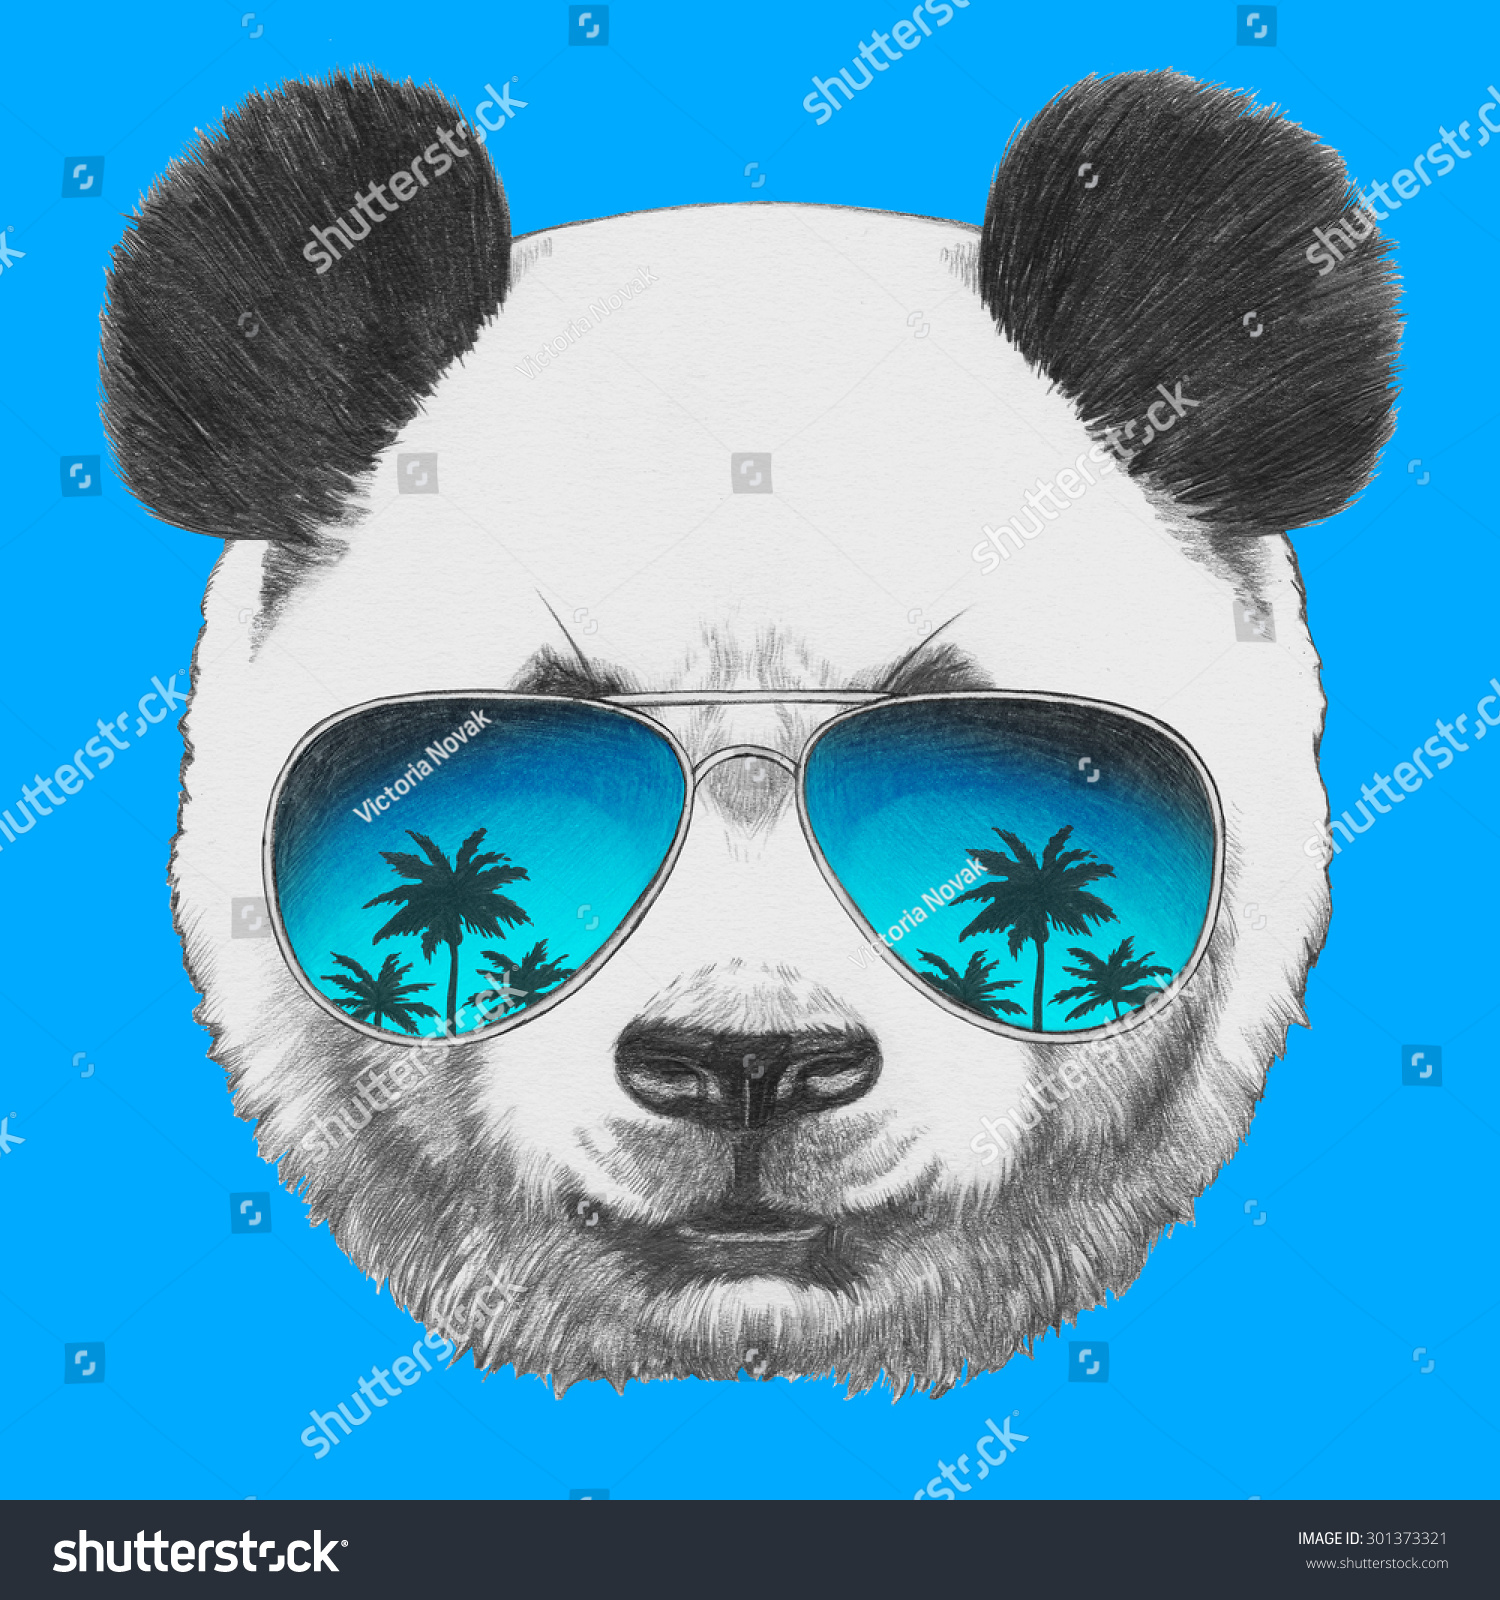 Original Drawing Of Panda With Mirror Sunglasses Isolated On Colored Background